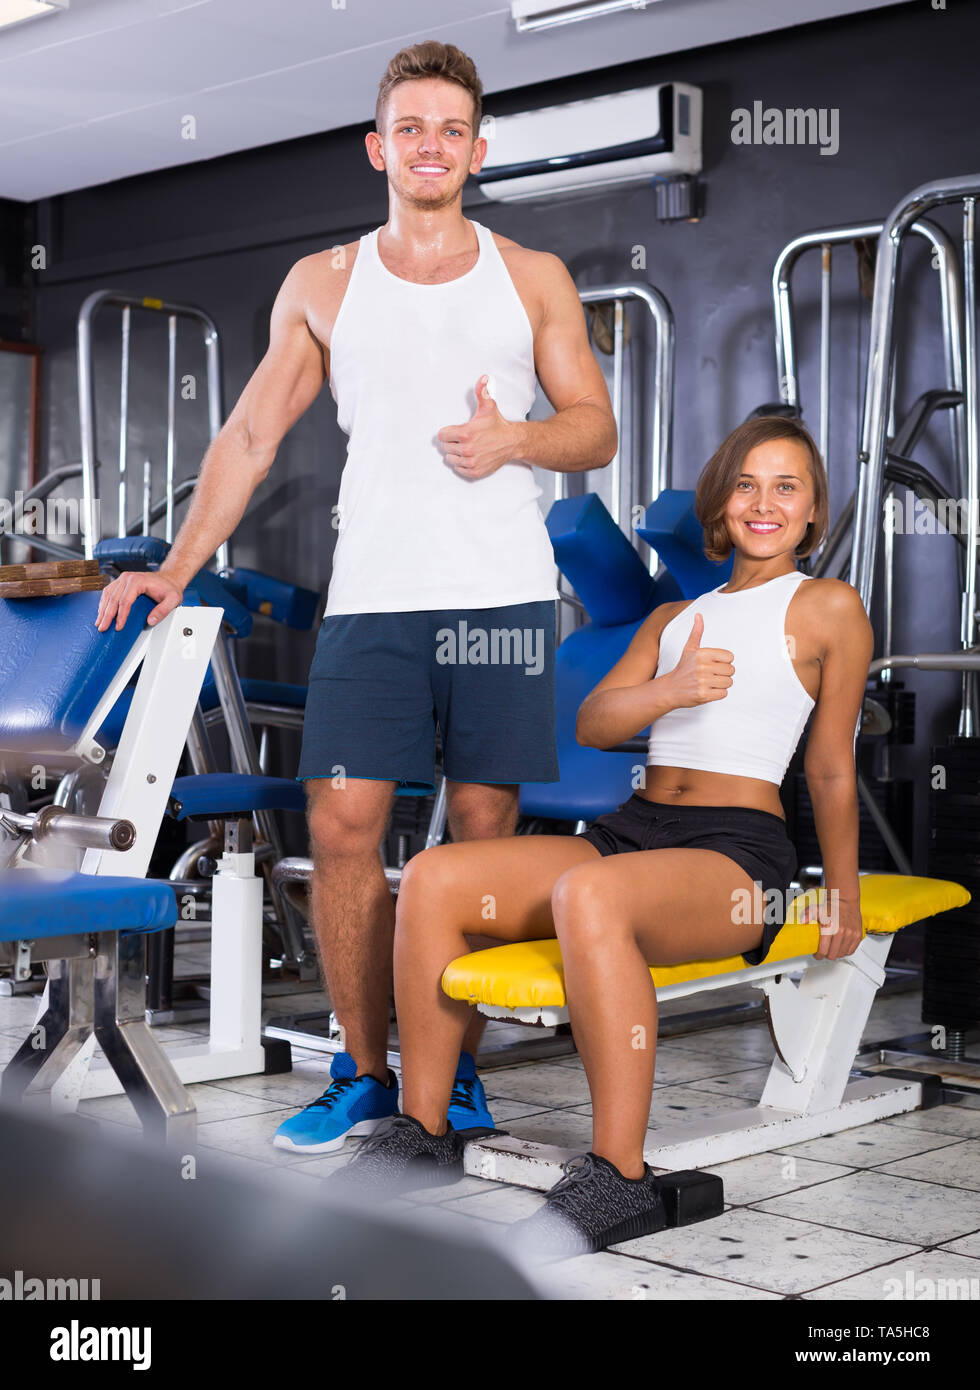 Smiling young man and woman taking pause between exercising in gym indoors - Stock Image